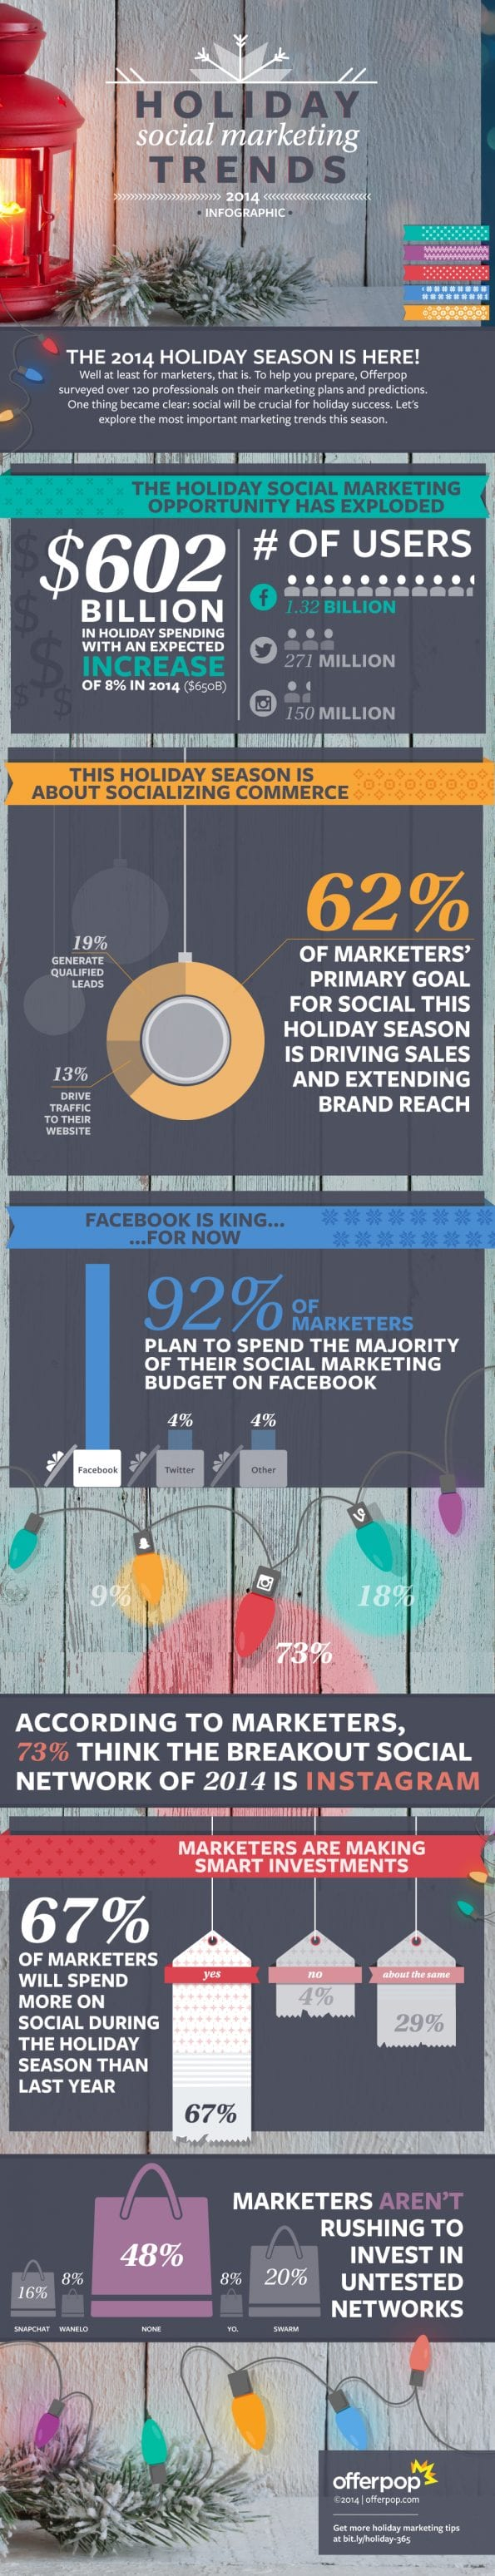 Holiday-trends-infographic_FINAL2